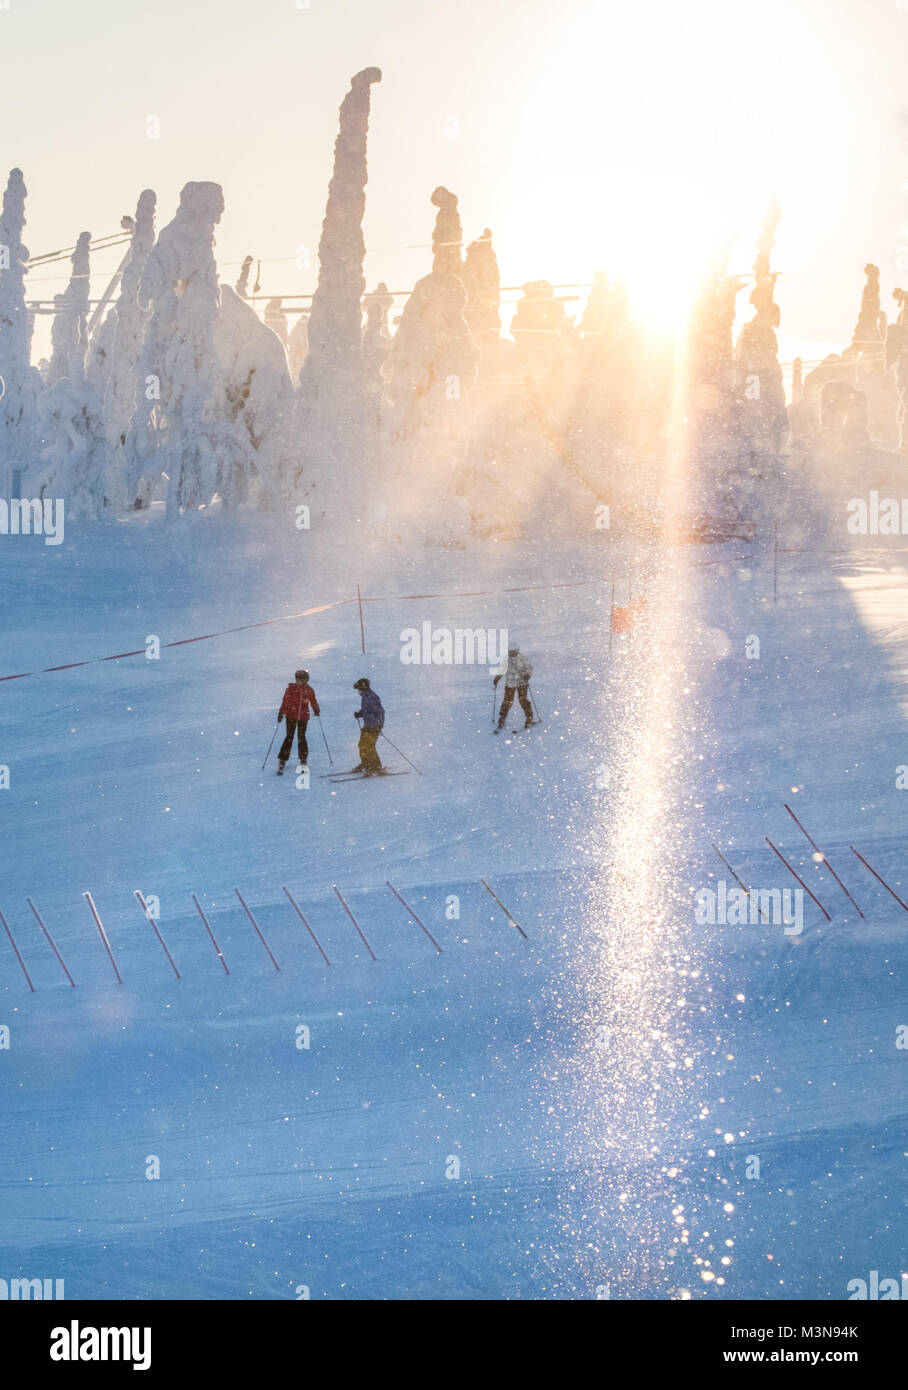 Skiers on the piste at The ski resort of Ruka in Finland - Stock Image